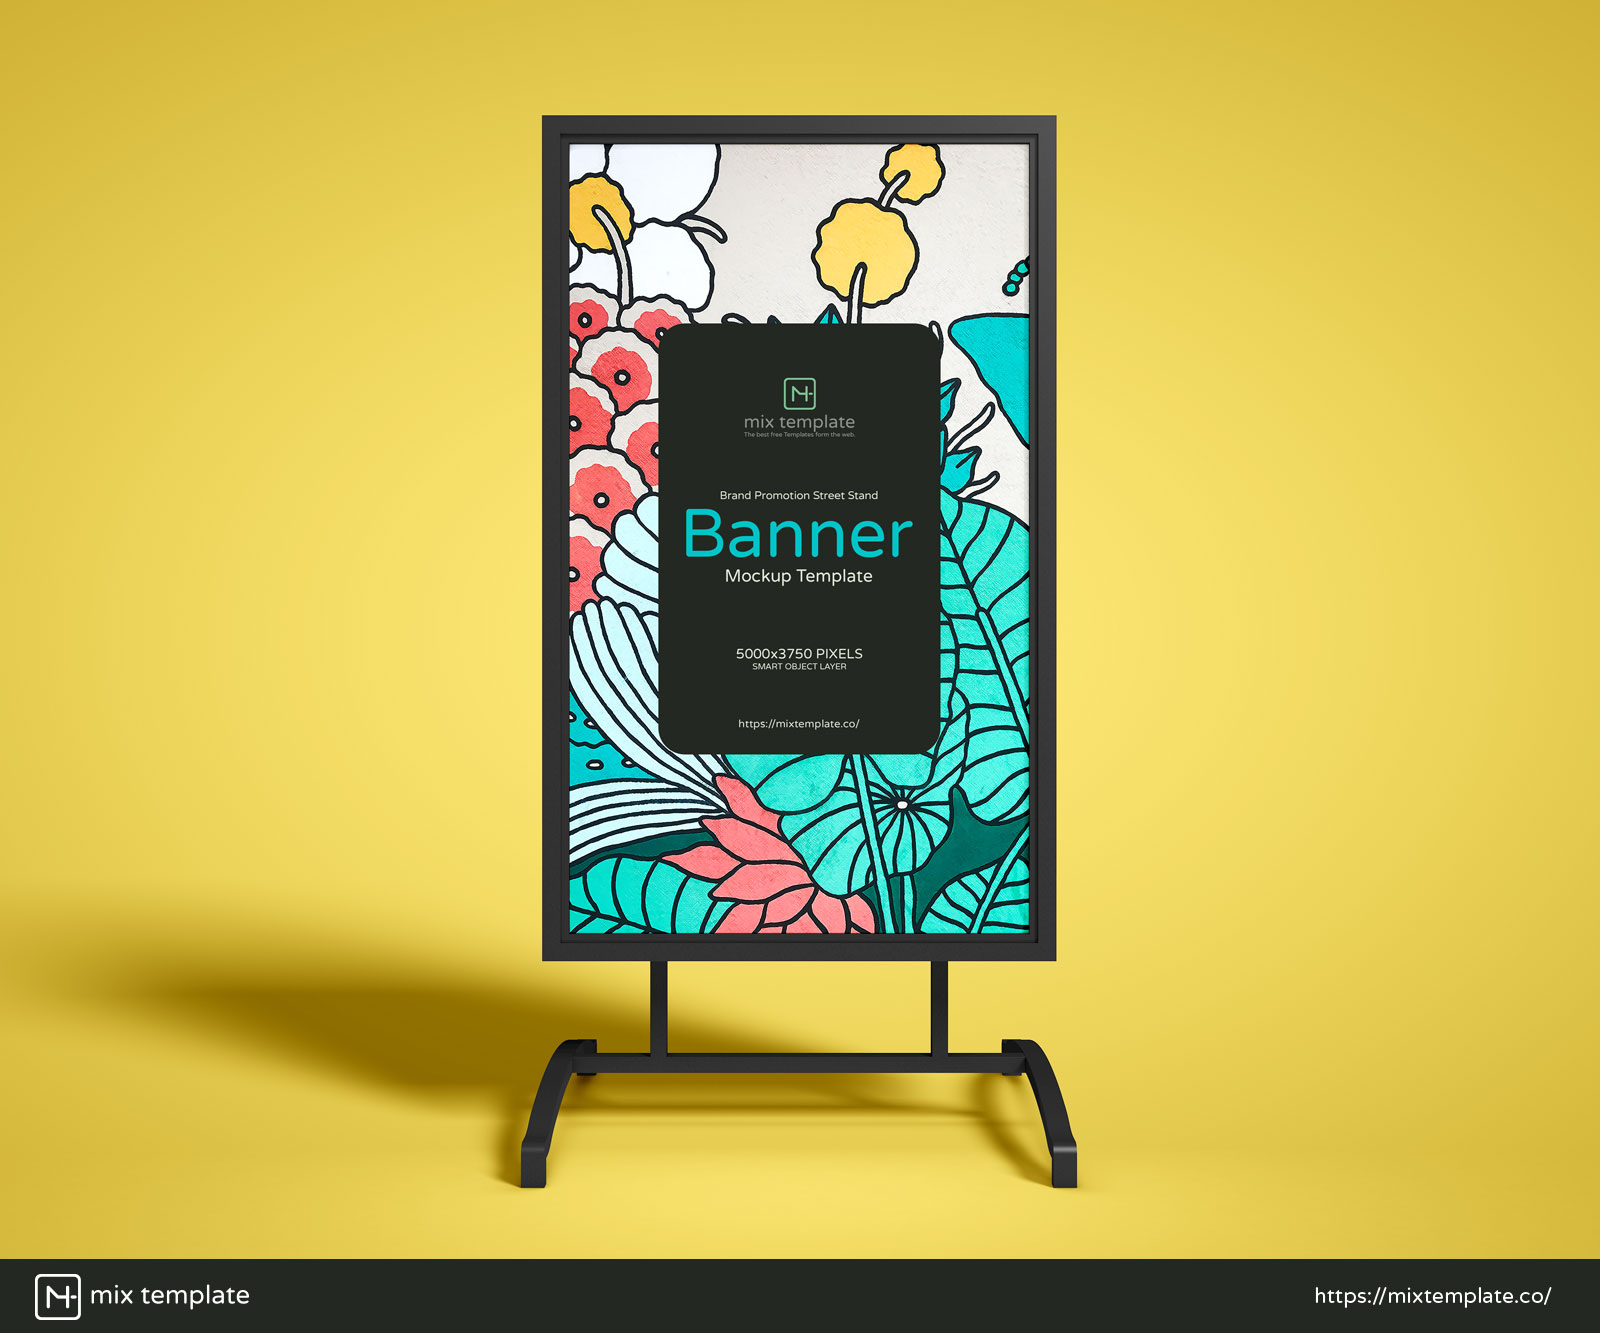 Free-Brand-Promotion-Street-Stand-Banner-Mockup-Template